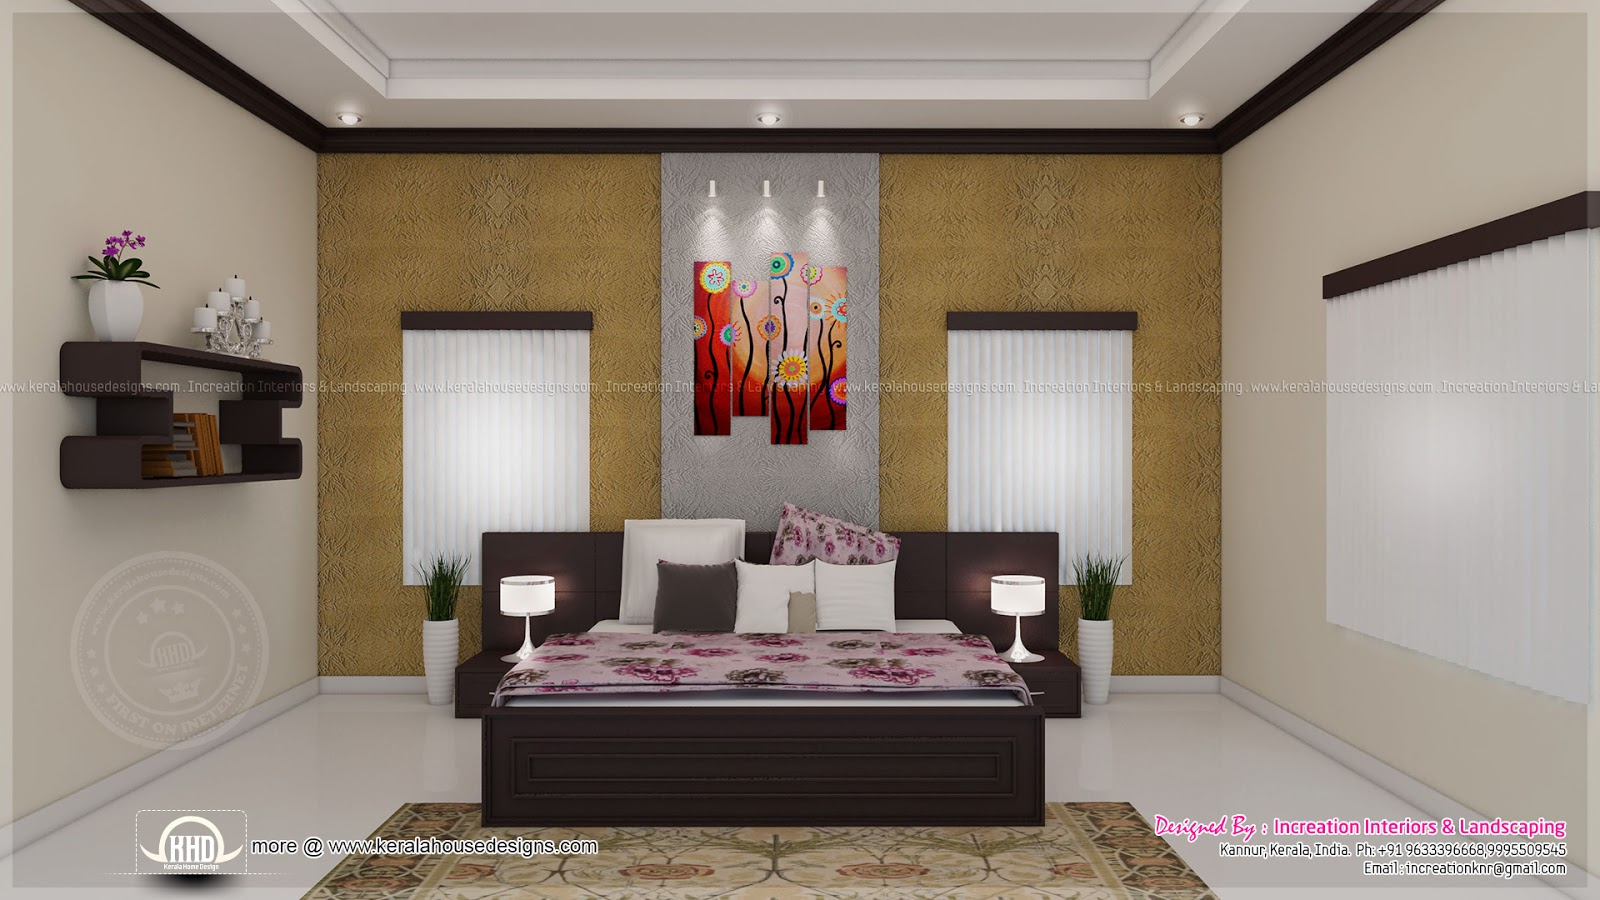 House interior ideas in 3d rendering kerala home design for Small indian house interior design photos